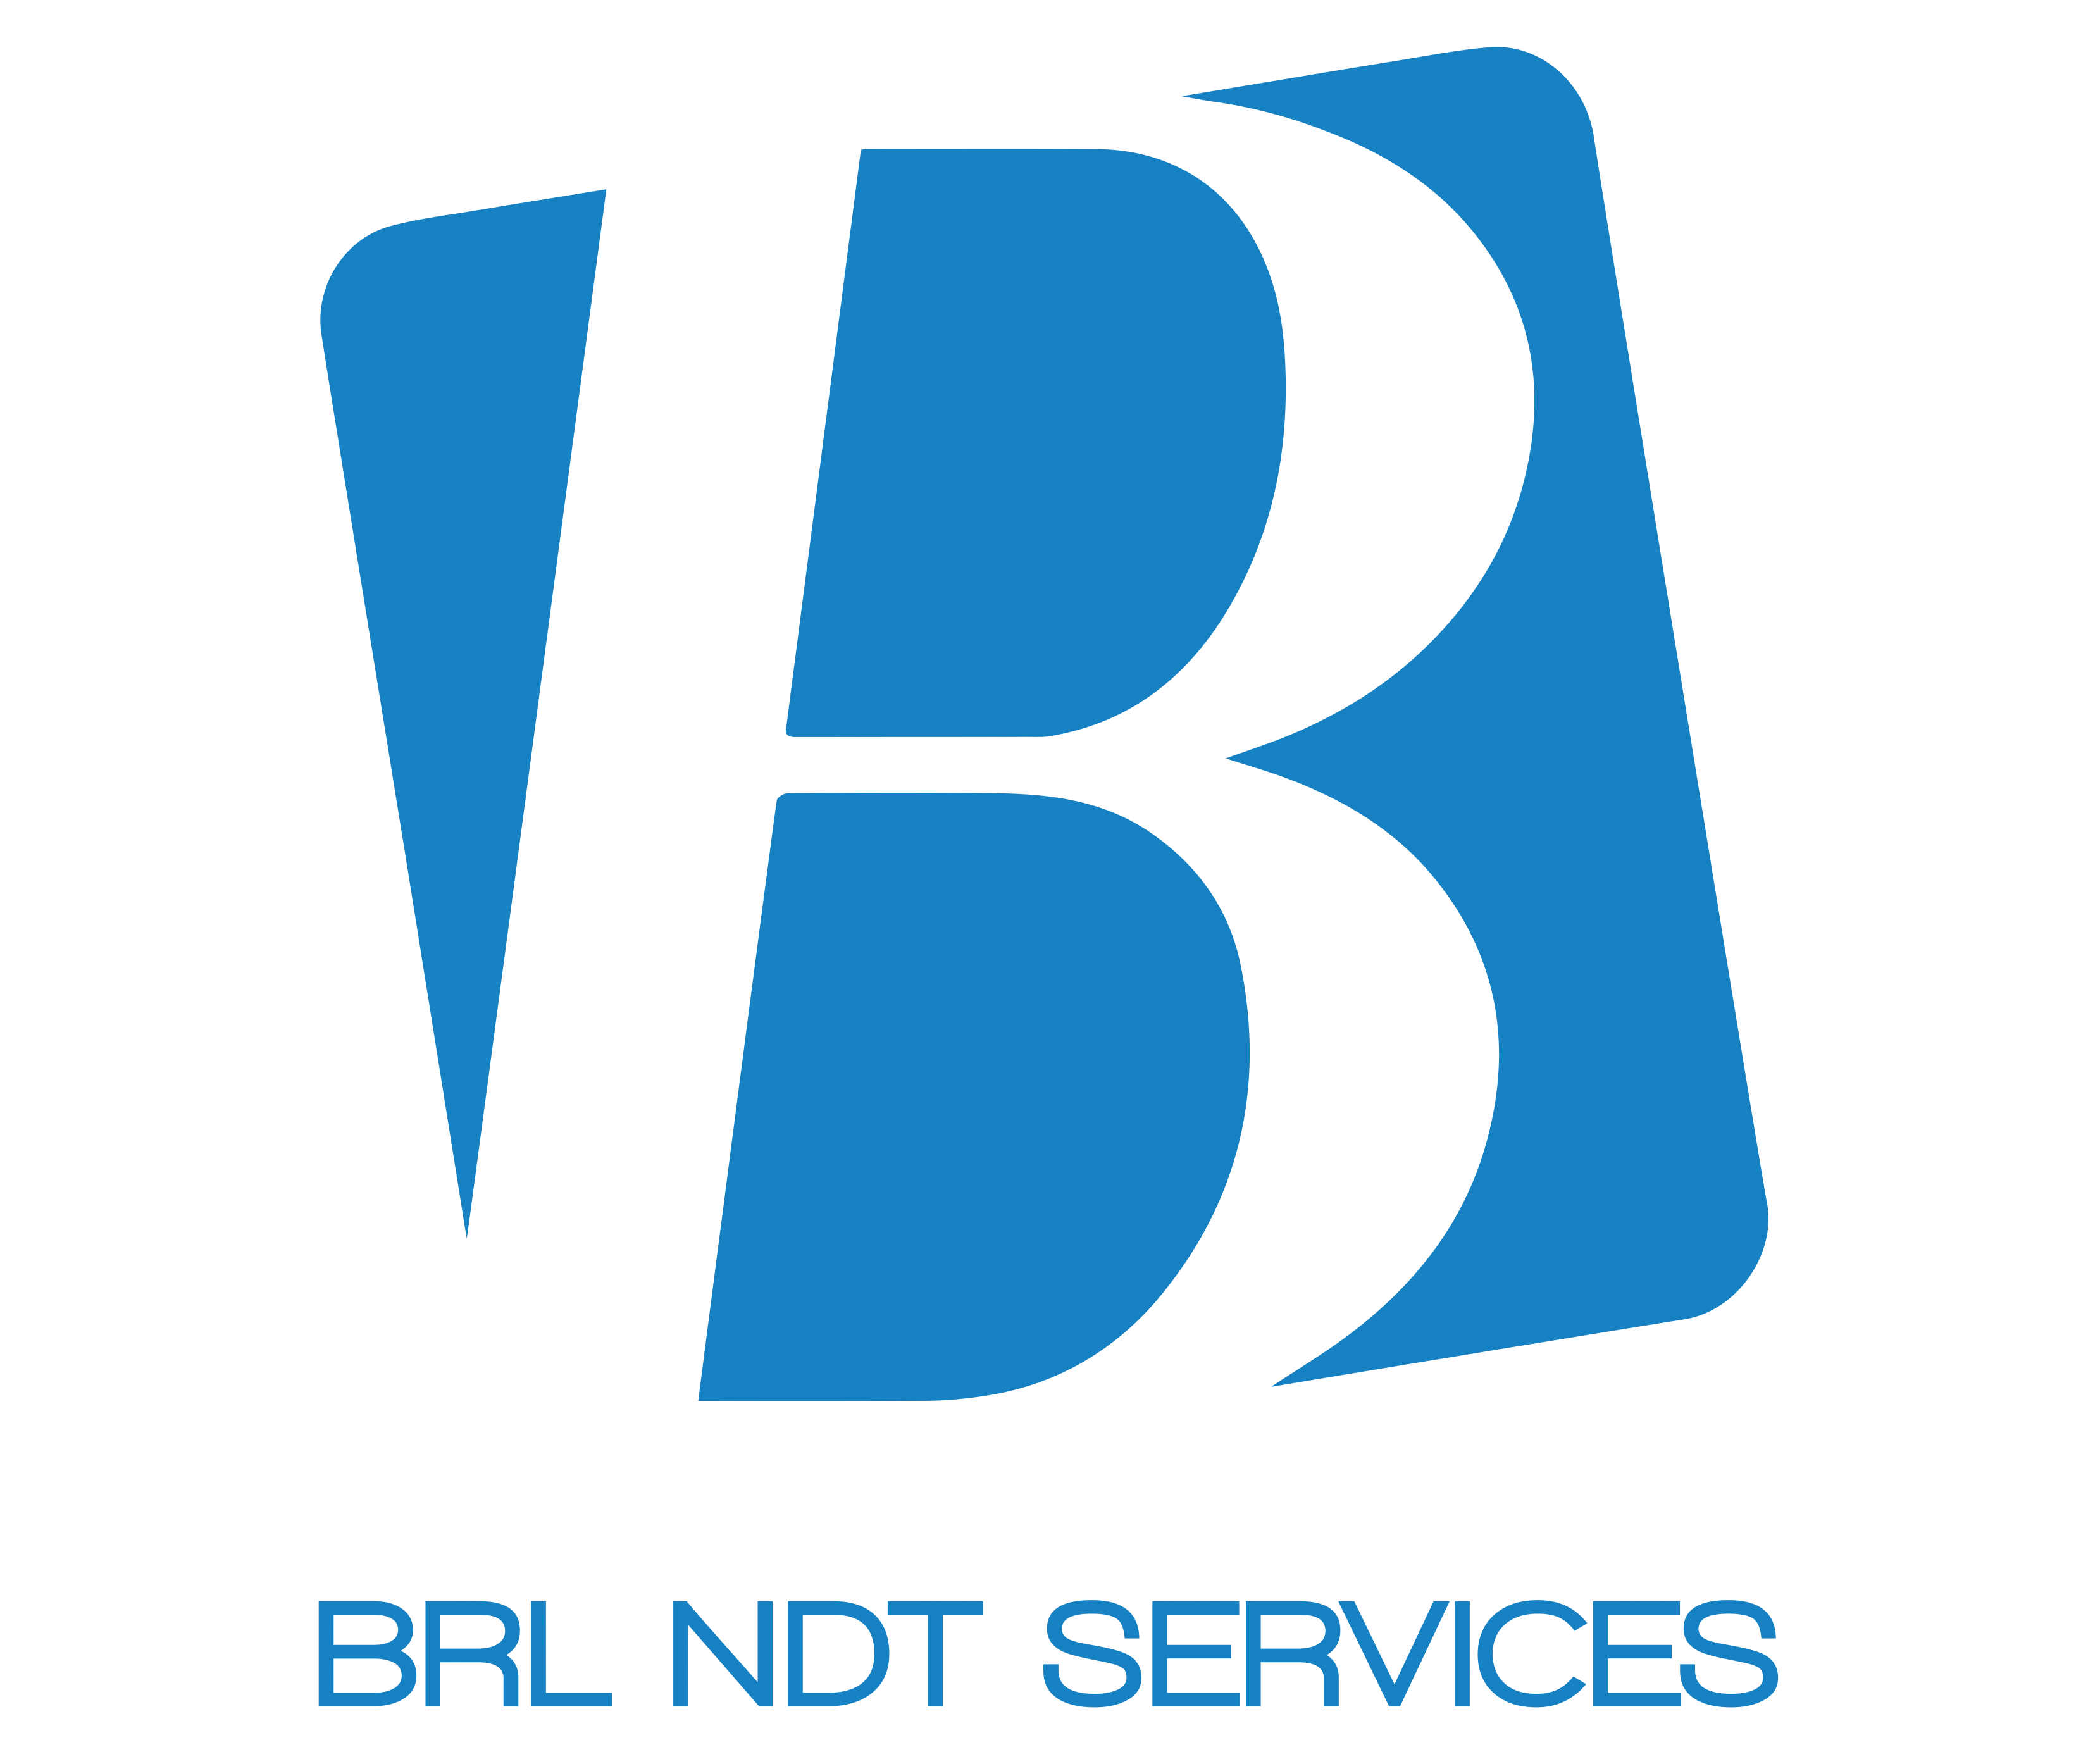 BRL NDT SERVICES